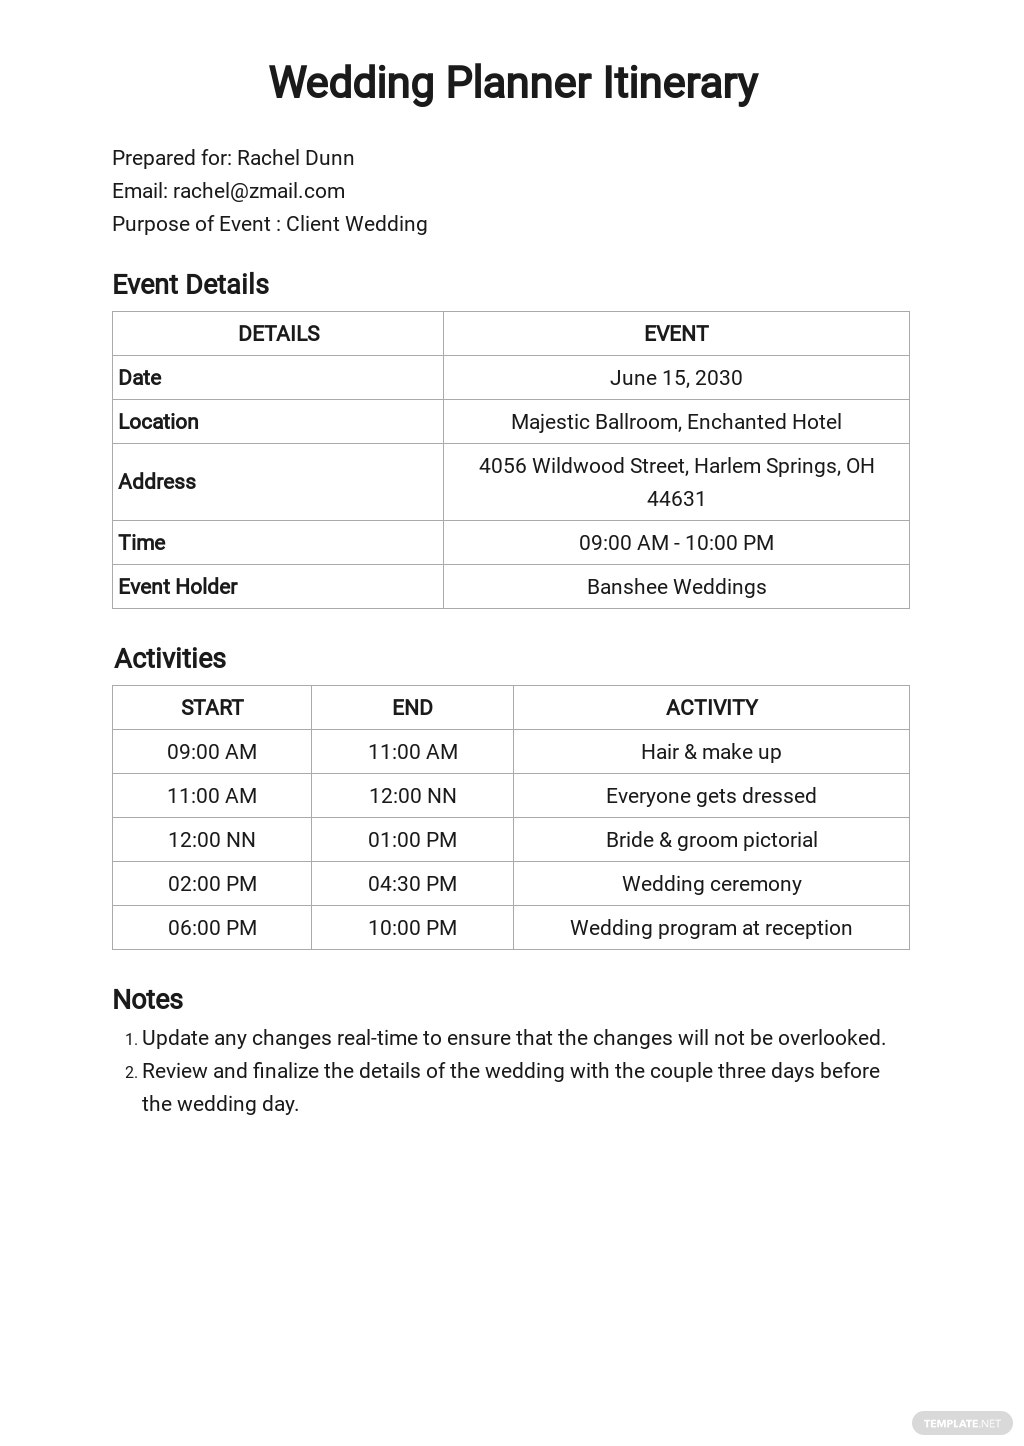 Wedding Planner Itinerary Template